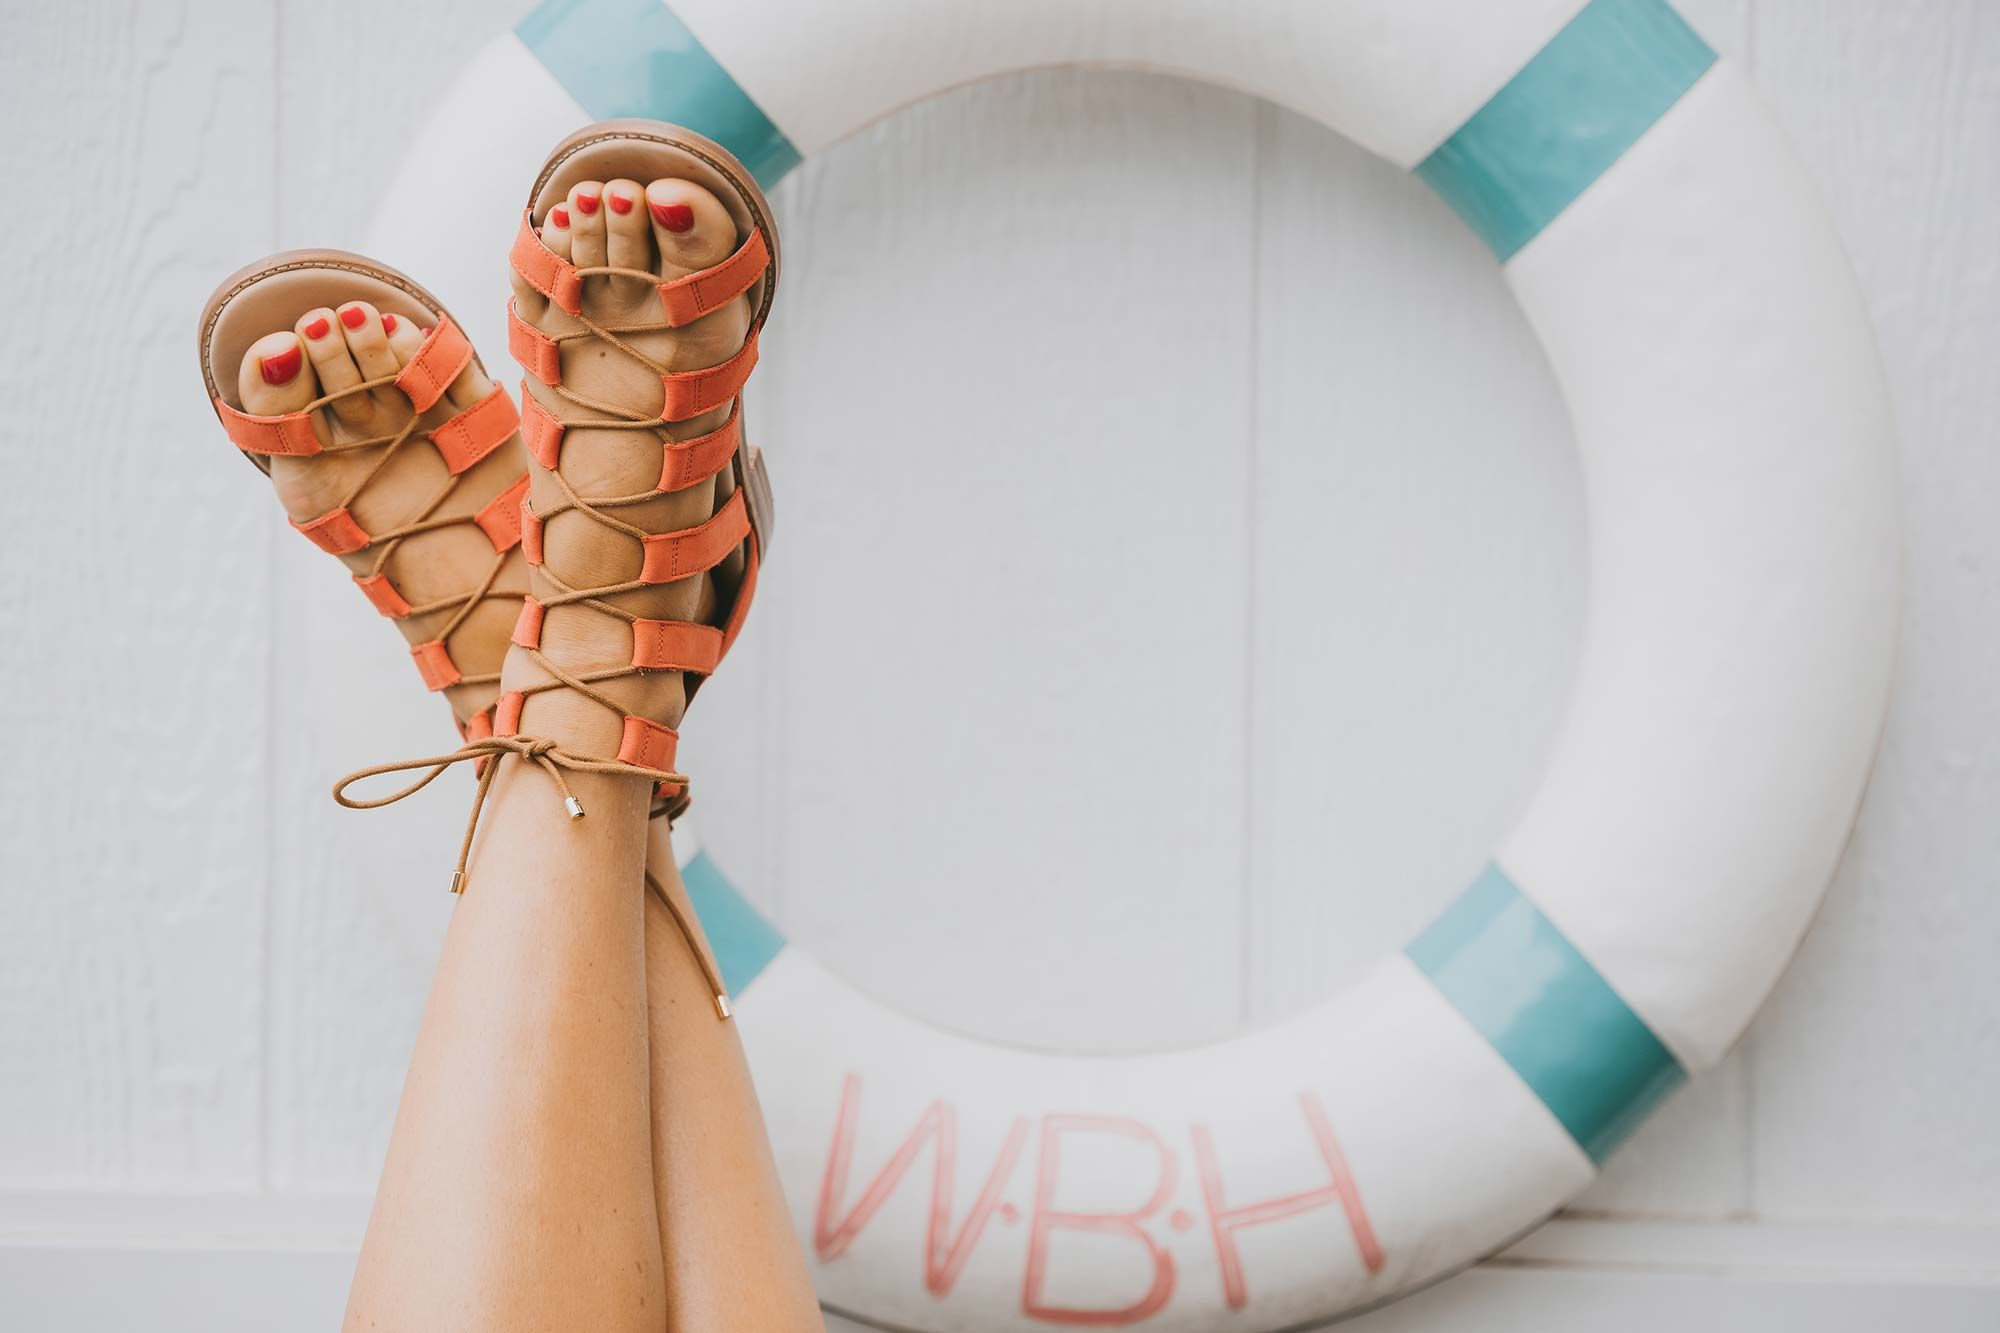 Bared_Footwear_Engagement_Party_With_Lenzo_Womens_Goose_Tangerine_Nubuck_Sandals_Buoy